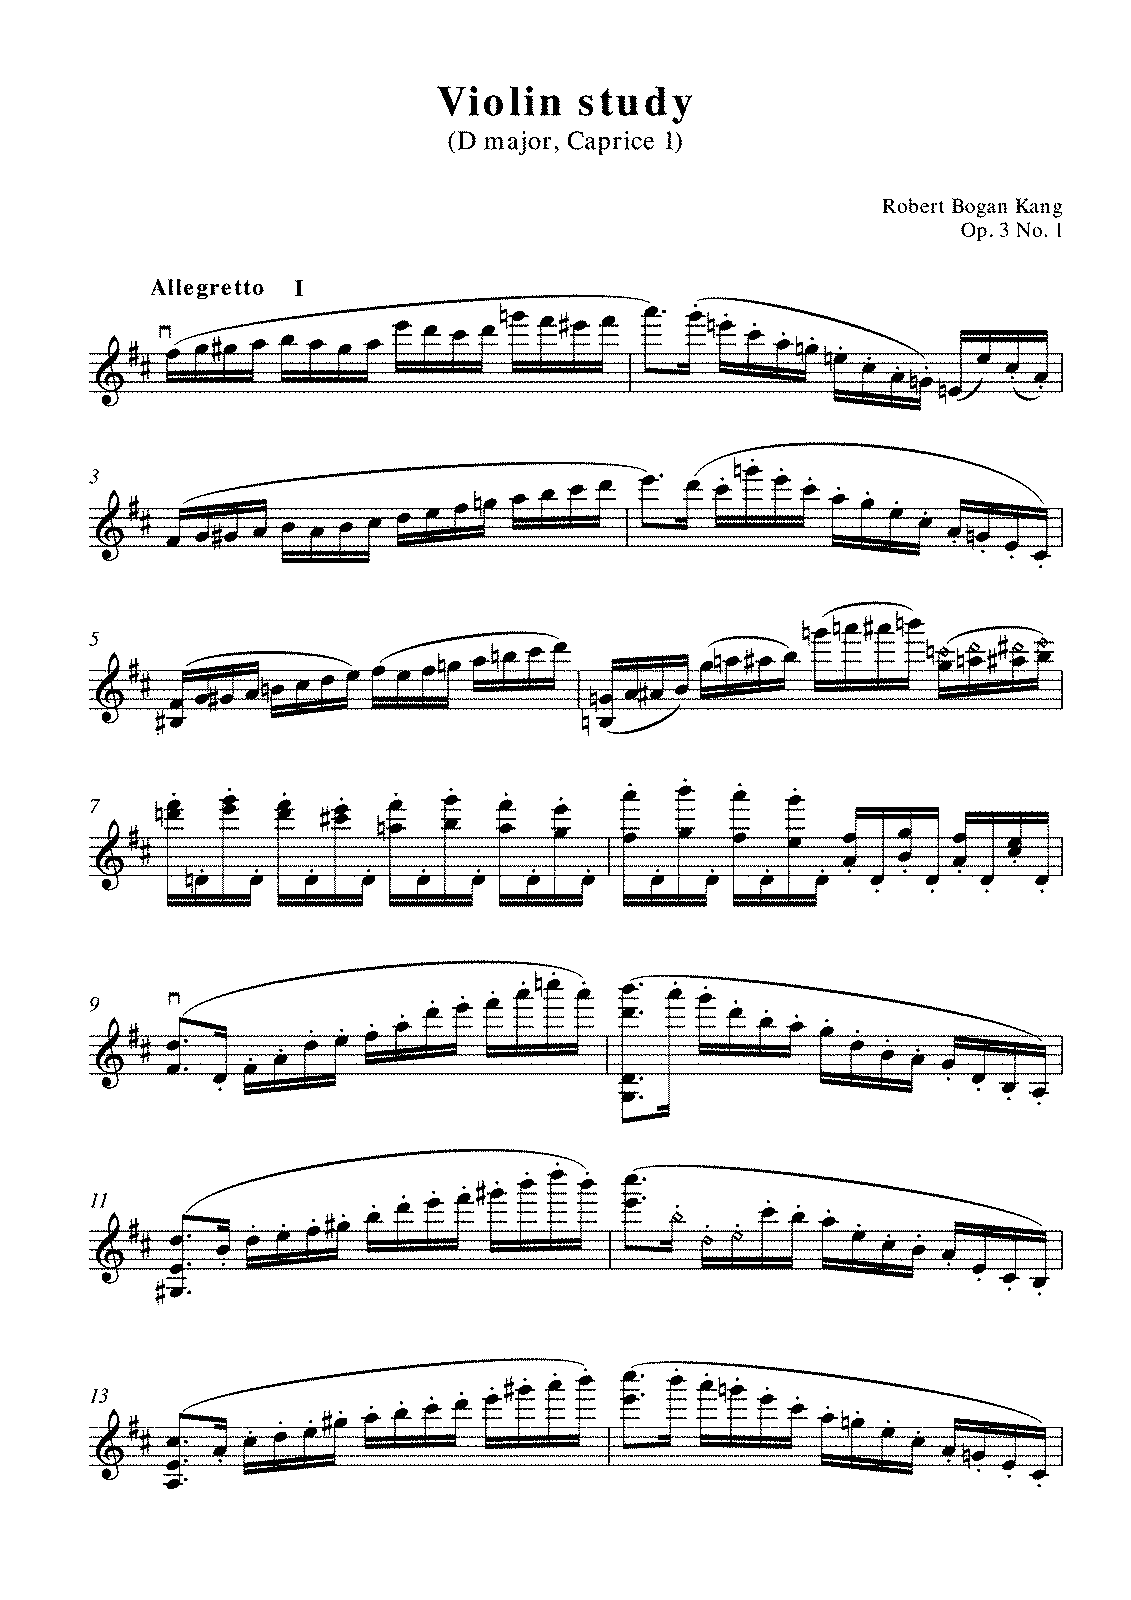 PMLP465739-Violin sdudy in D major.pdf